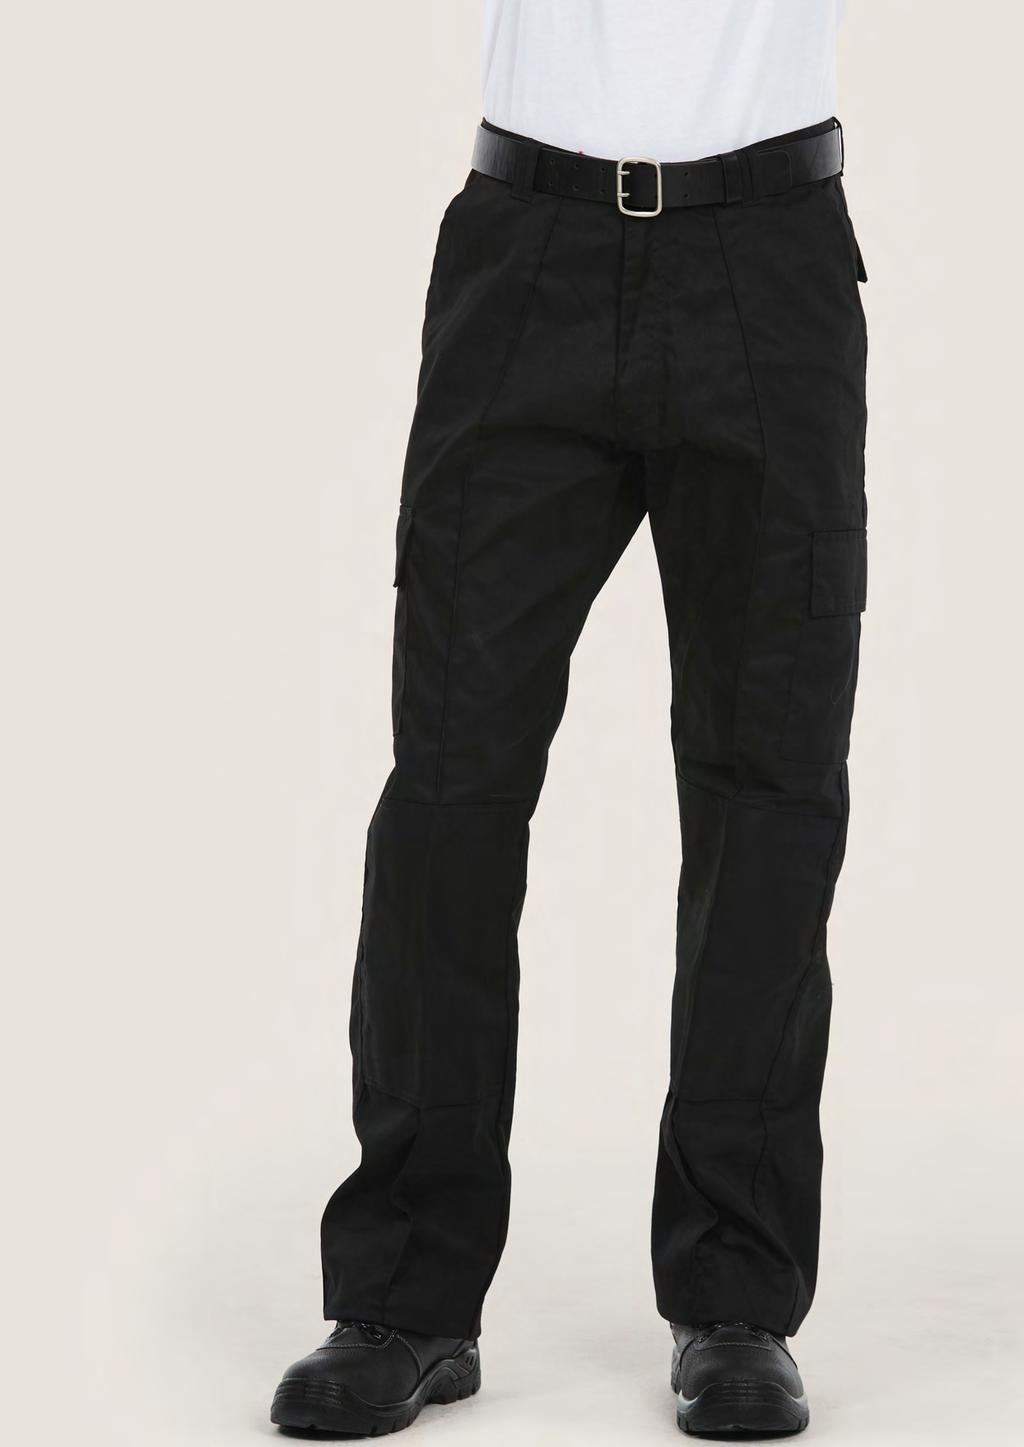 TROUSERS UC904 UNISEX CARGO TROUSER WITH KNEE PAD POCKETS 245 60 25/5 65% Polyester 35% Cotton Fabric: 245 /7 oz Flat front with sewn-in front crease 2 side & 2 rear pockets with velcro flaps 2 thigh